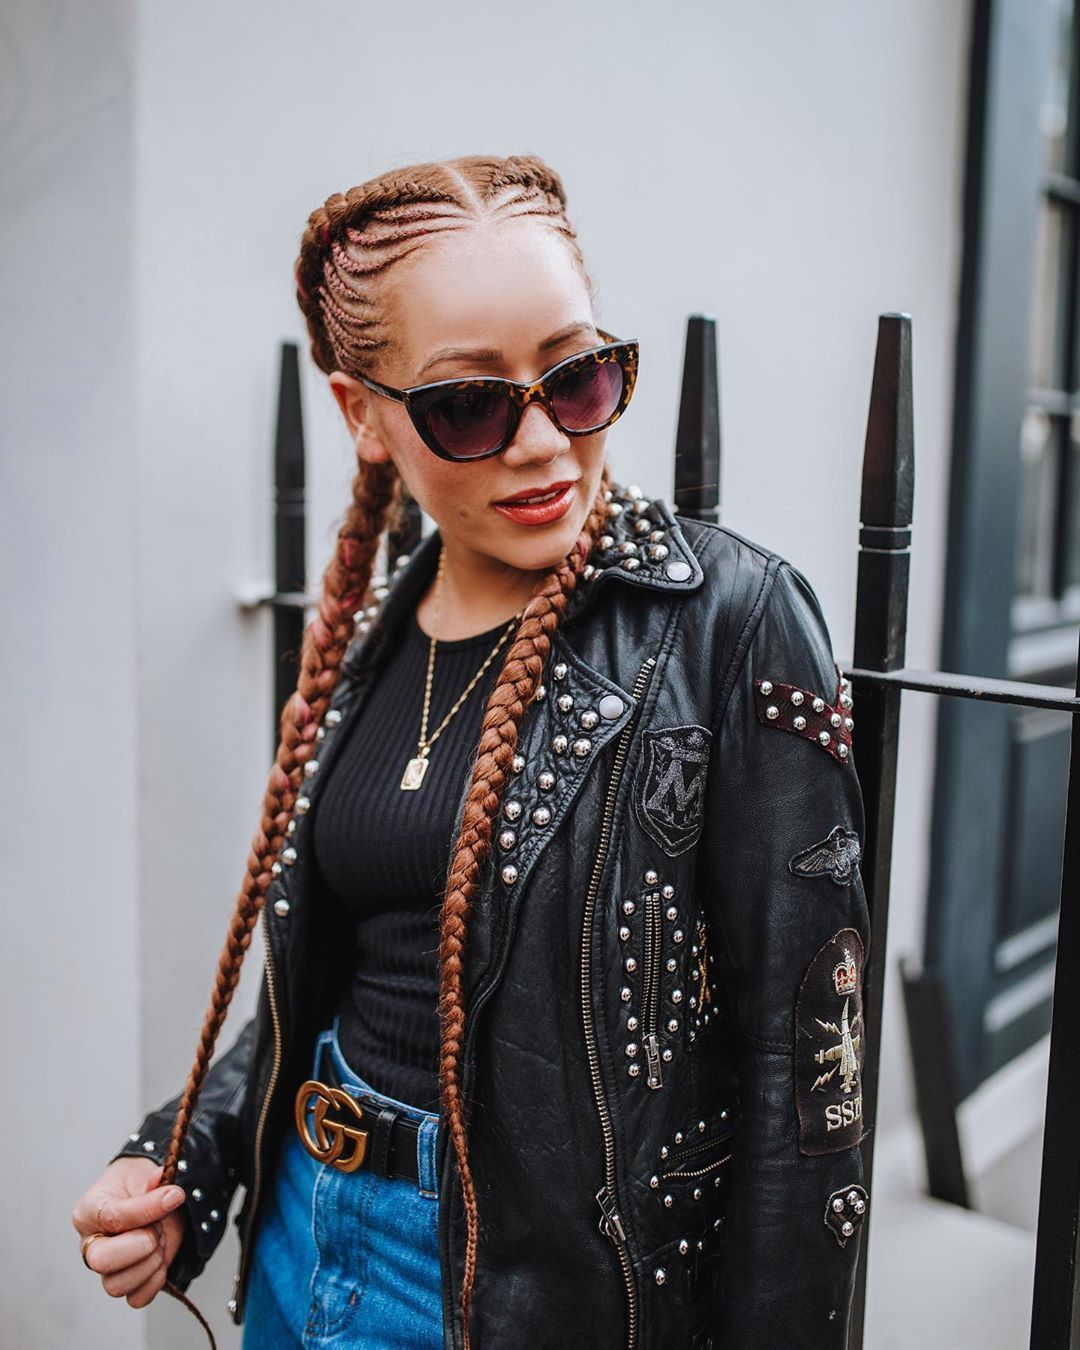 Two Braids Hairstyles Trending For 2020 All Things Hair Us